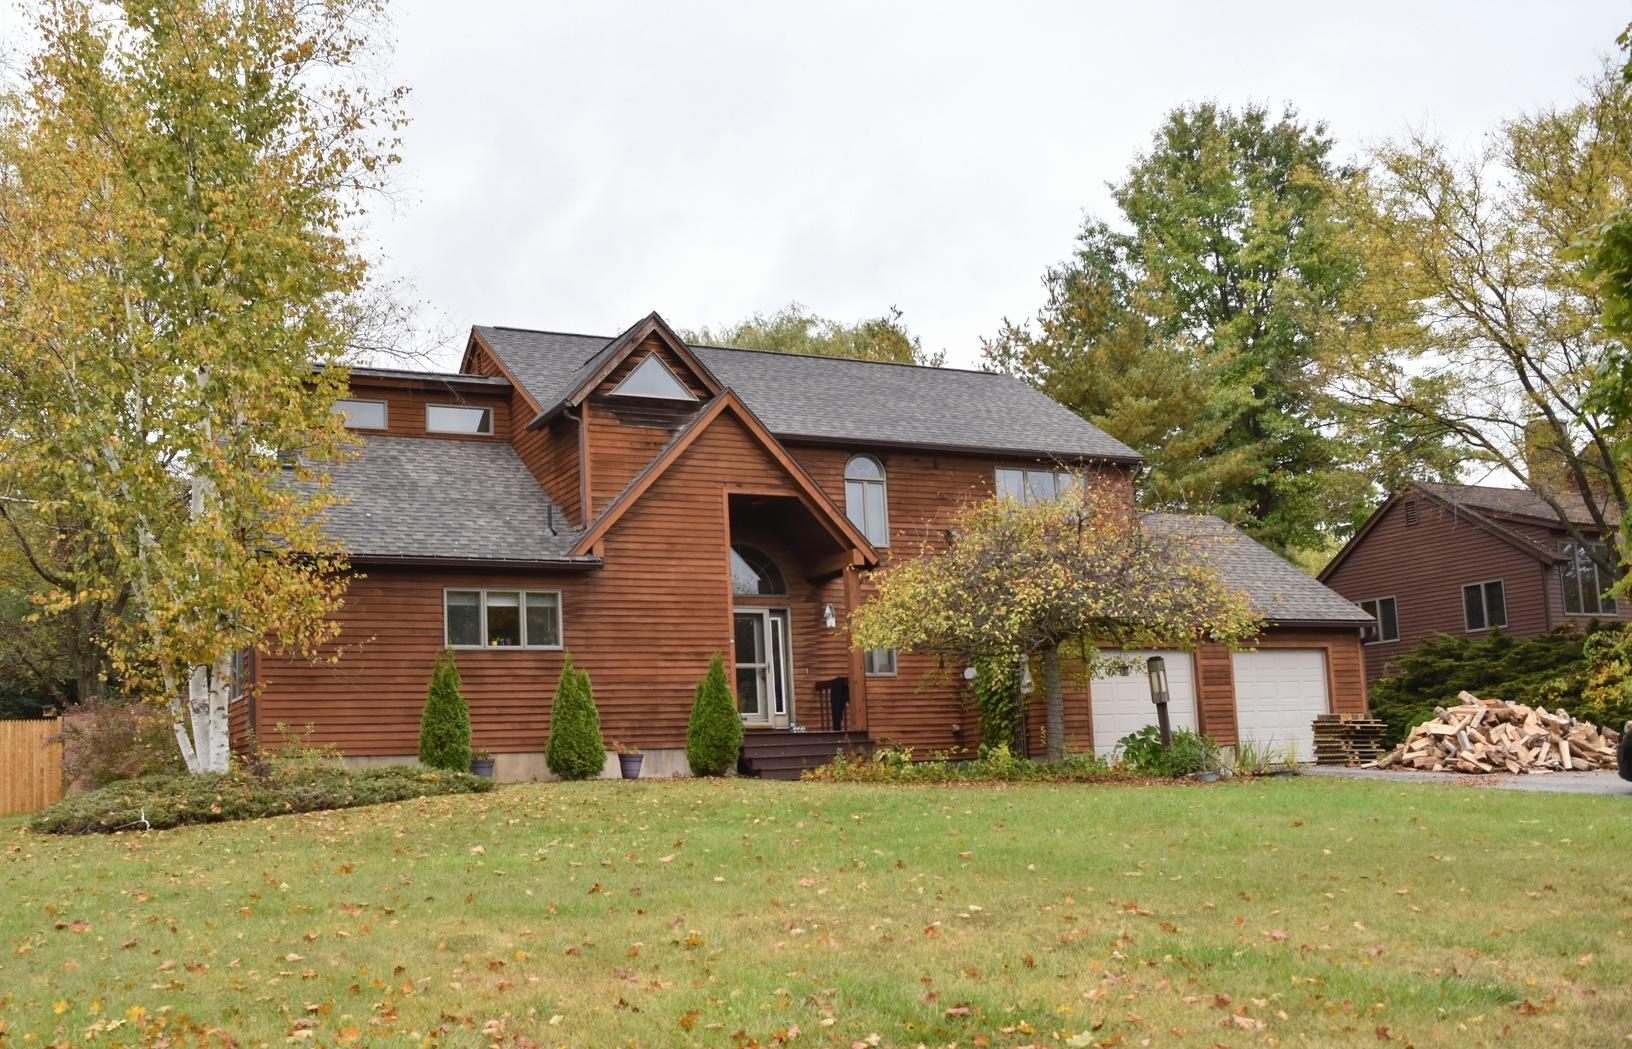 Pittsfield, MA Roof Replacement IKO Dynasty Driftshake Shingles - After Photo